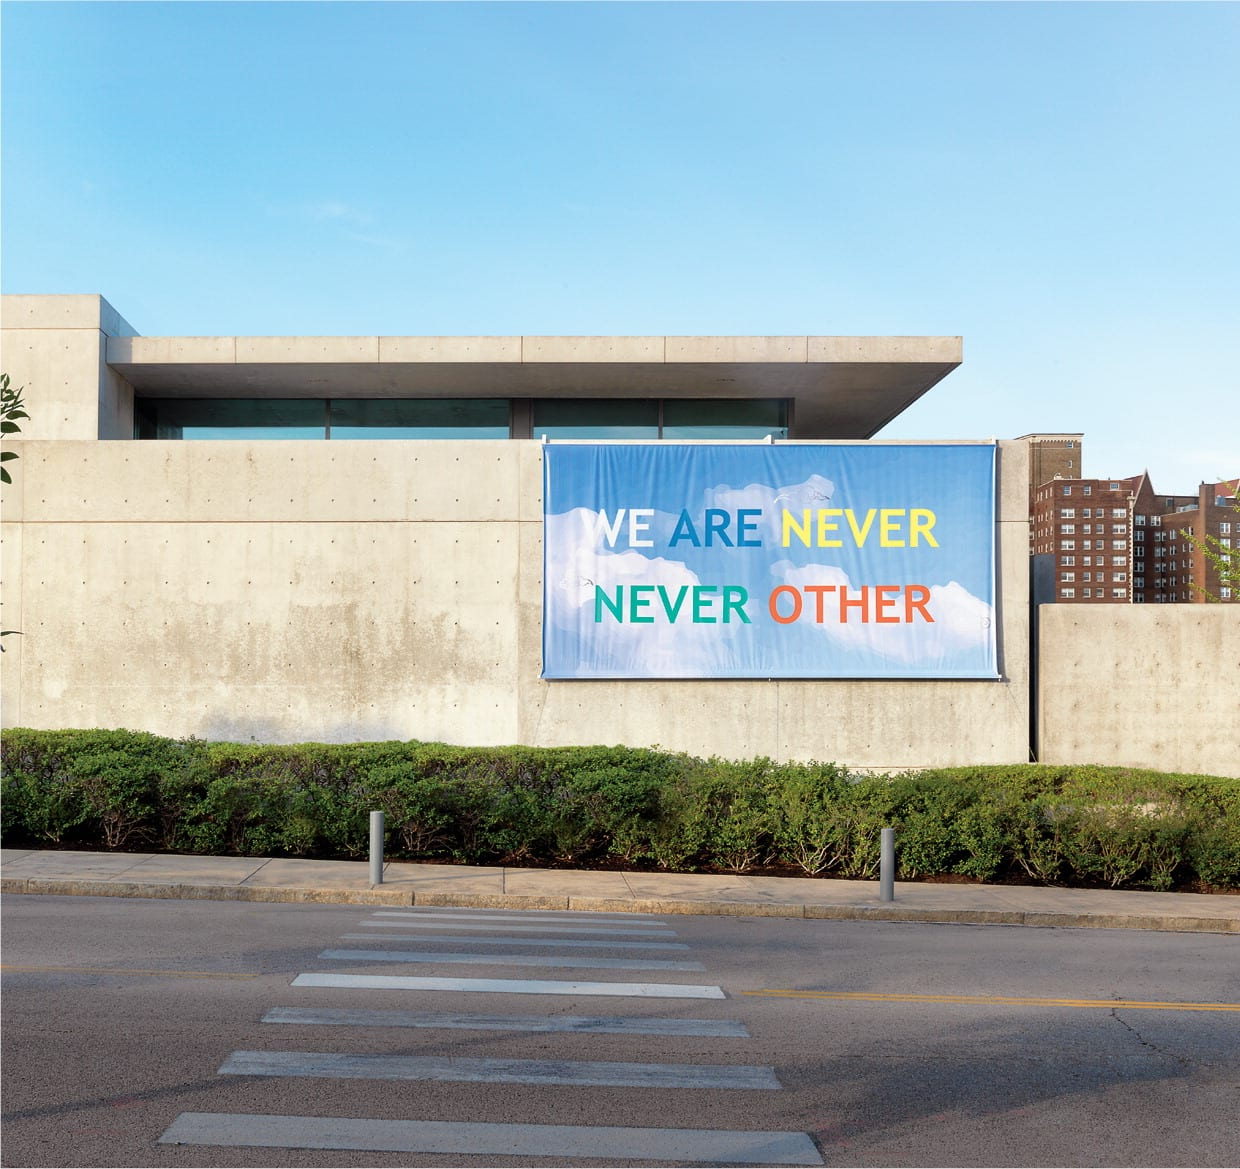 """A concrete building stands before clear blue sky. In front of the building are green bushes and a crosswalk on a street. On the wall of the building facing the camera, there is a large banner with a background of blue sky and clouds. In bold colorful letters over the image read the words, """"WE ARE NEVER NEVER OTHER."""""""